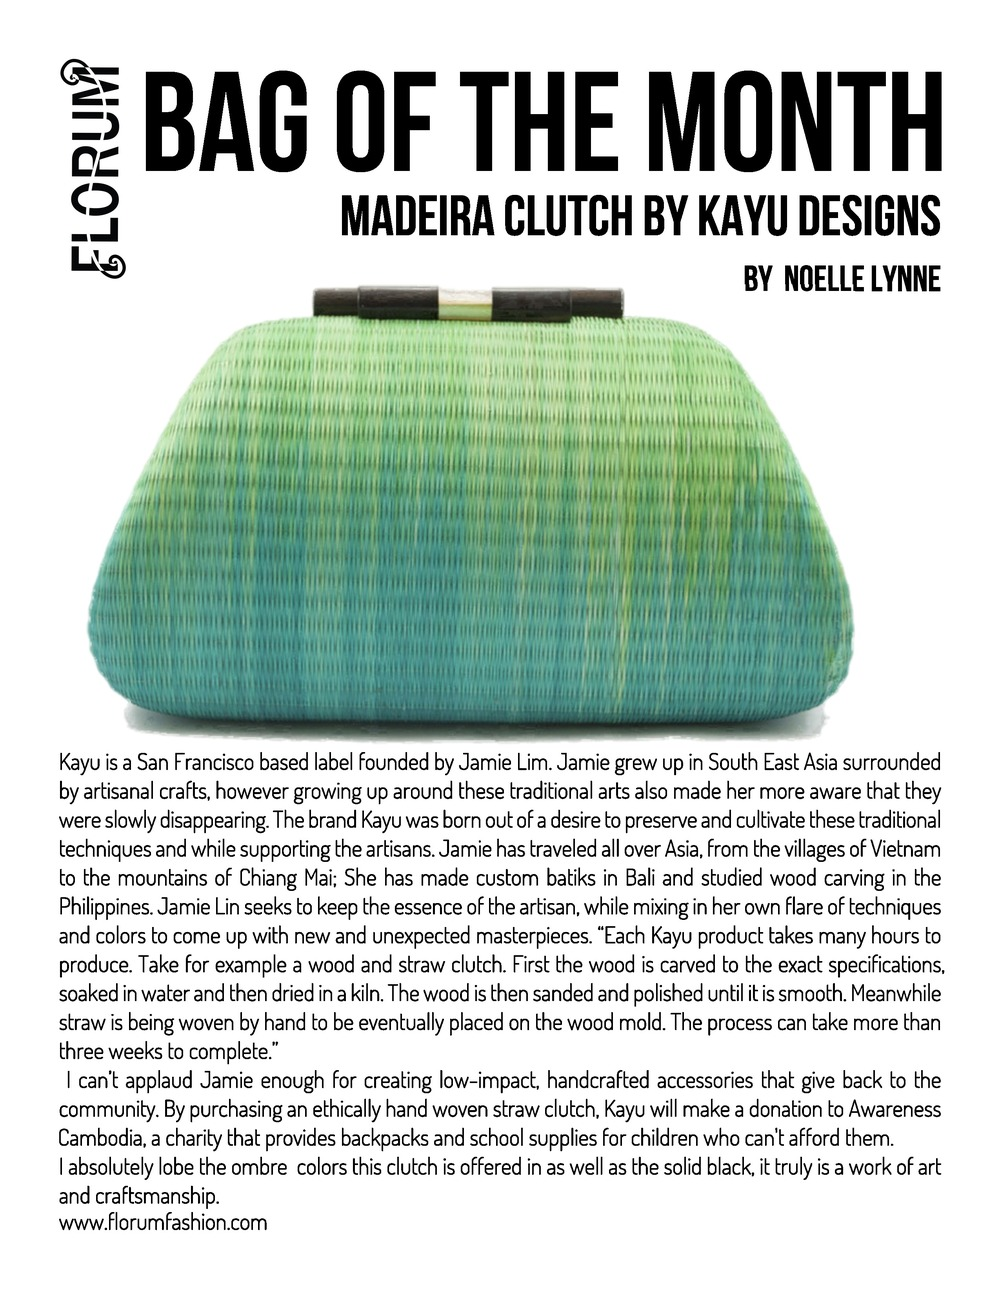 Noelle Lynne Florum Fashion Magazine Sustainable Bag of the Month Madeira Clutch Kayu Designs